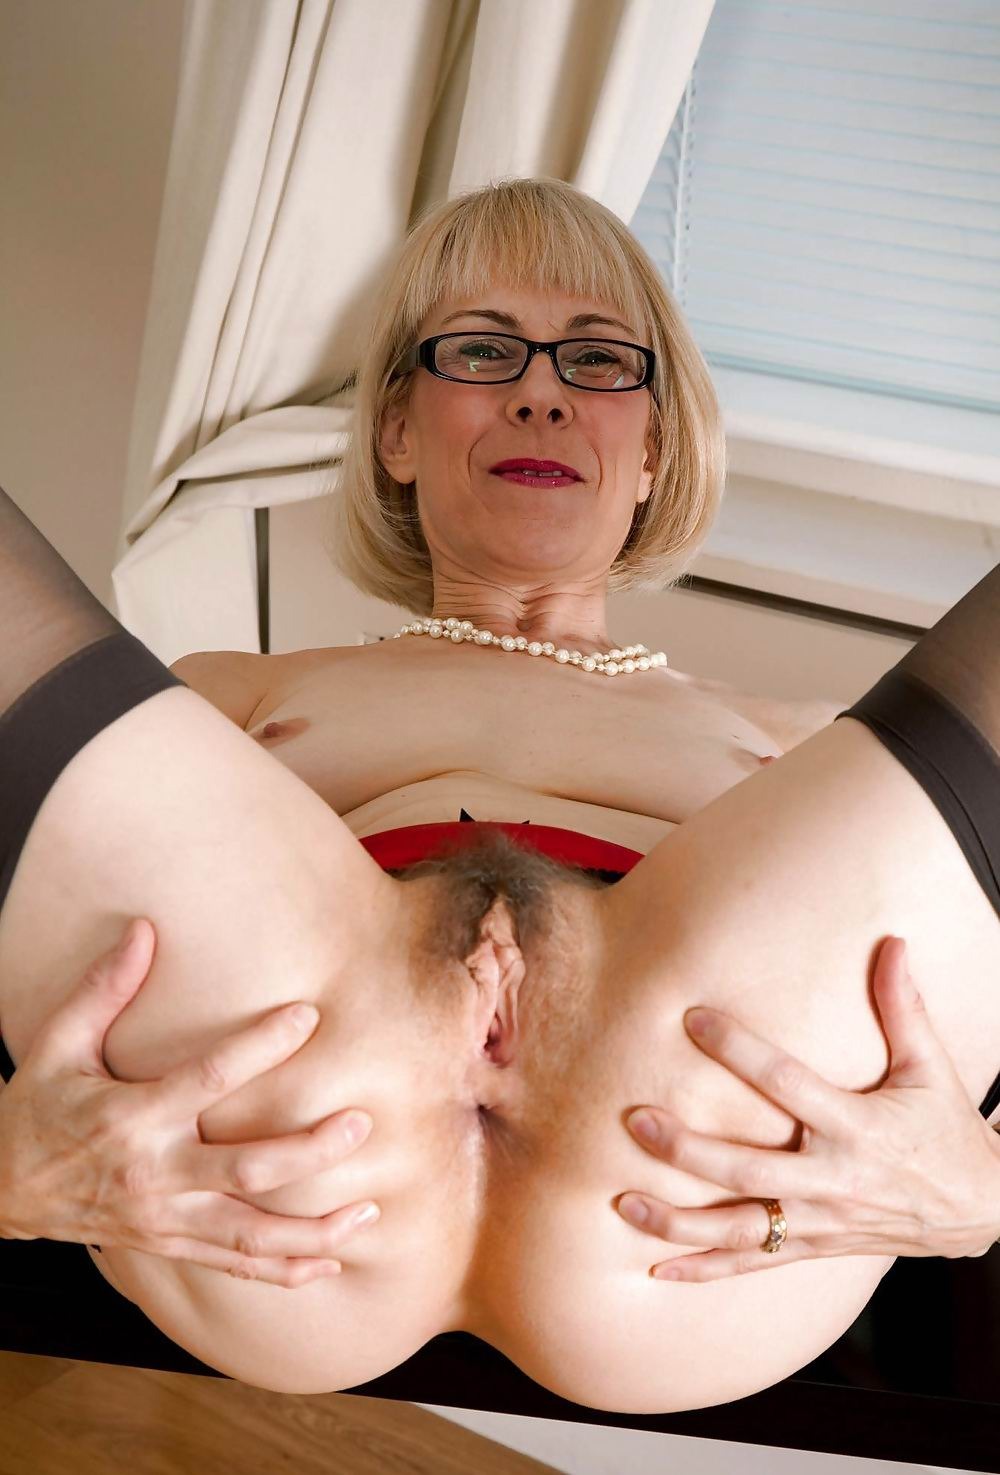 HORNY Grannies -home of lustful grannies turning into wild and ...: www.omatgp.com/granki/omasex2.html